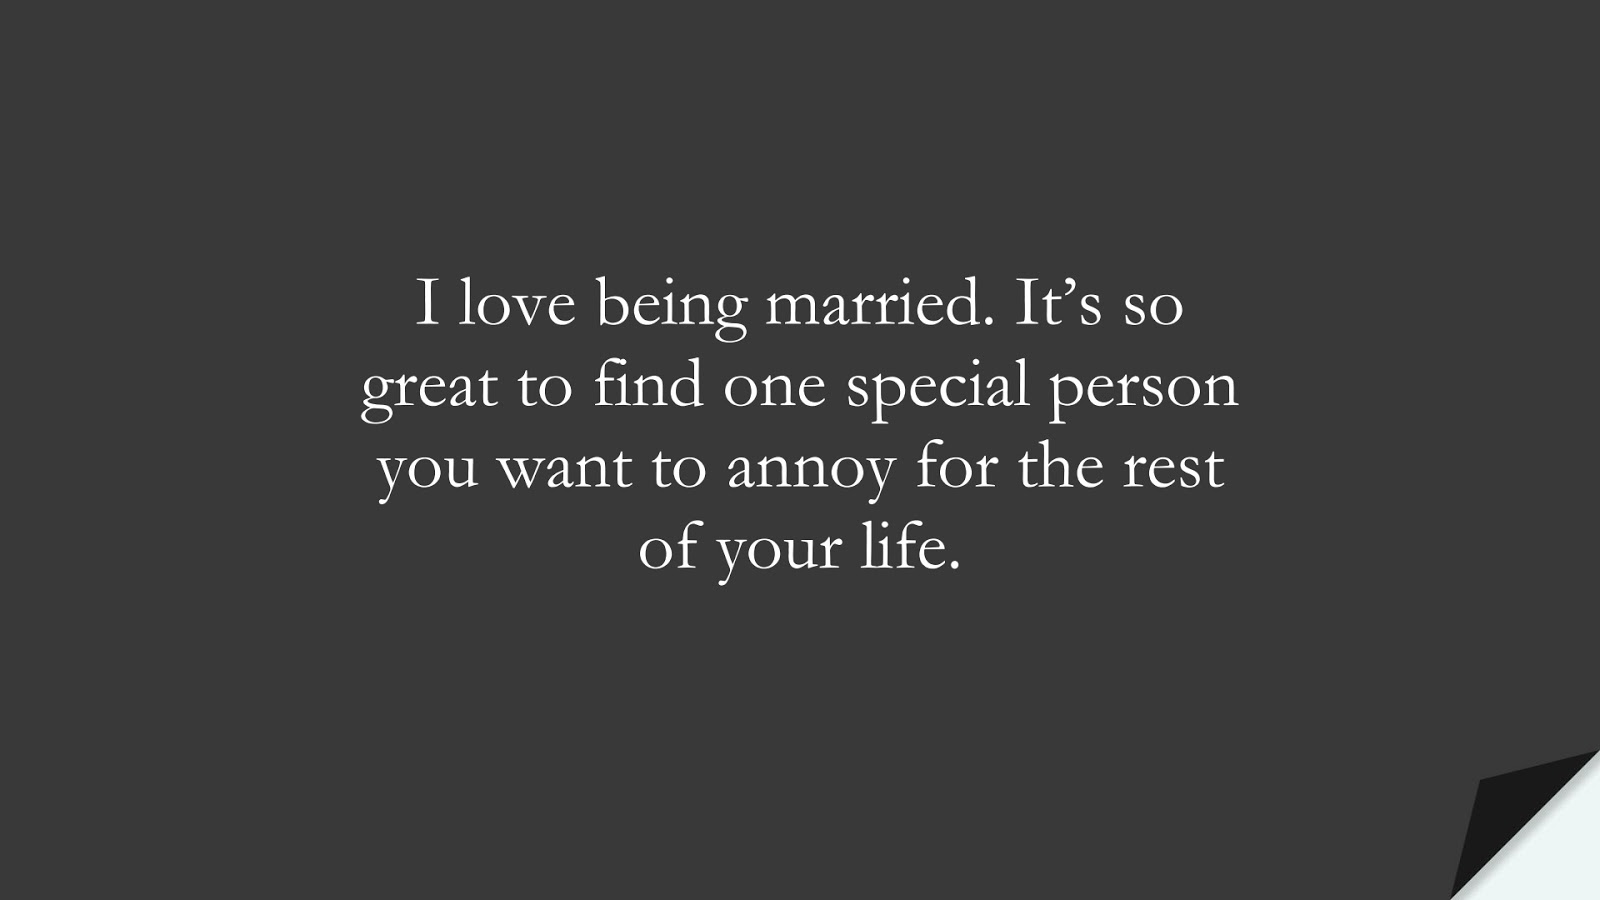 I love being married. It's so great to find one special person you want to annoy for the rest of your life.FALSE